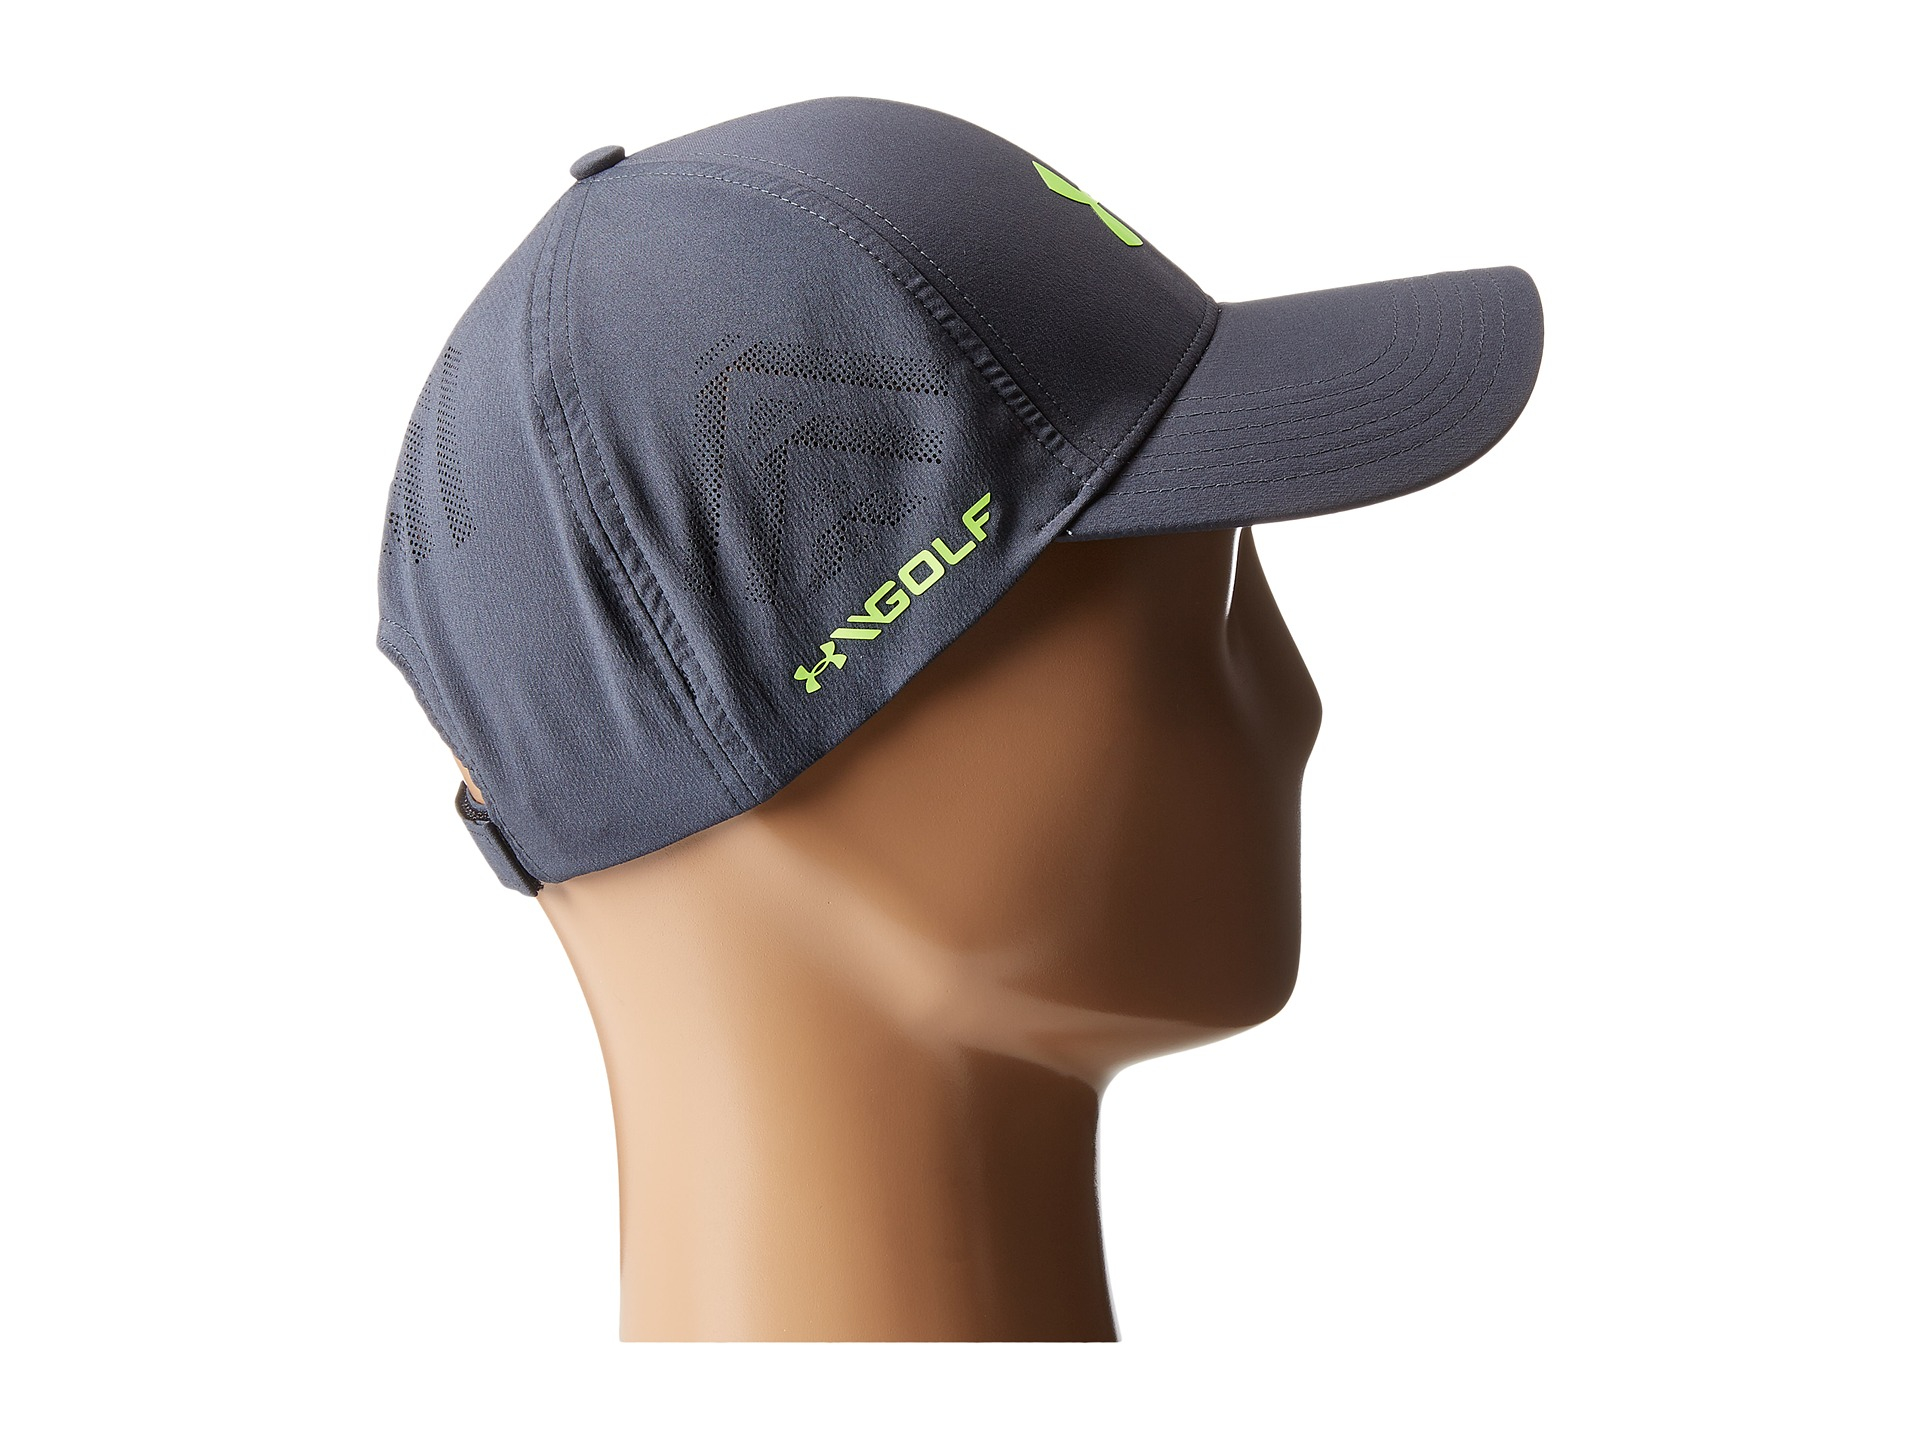 62368769958 Lyst - Under Armour Ua Driver Adjustable Golf Cap in Gray for Men